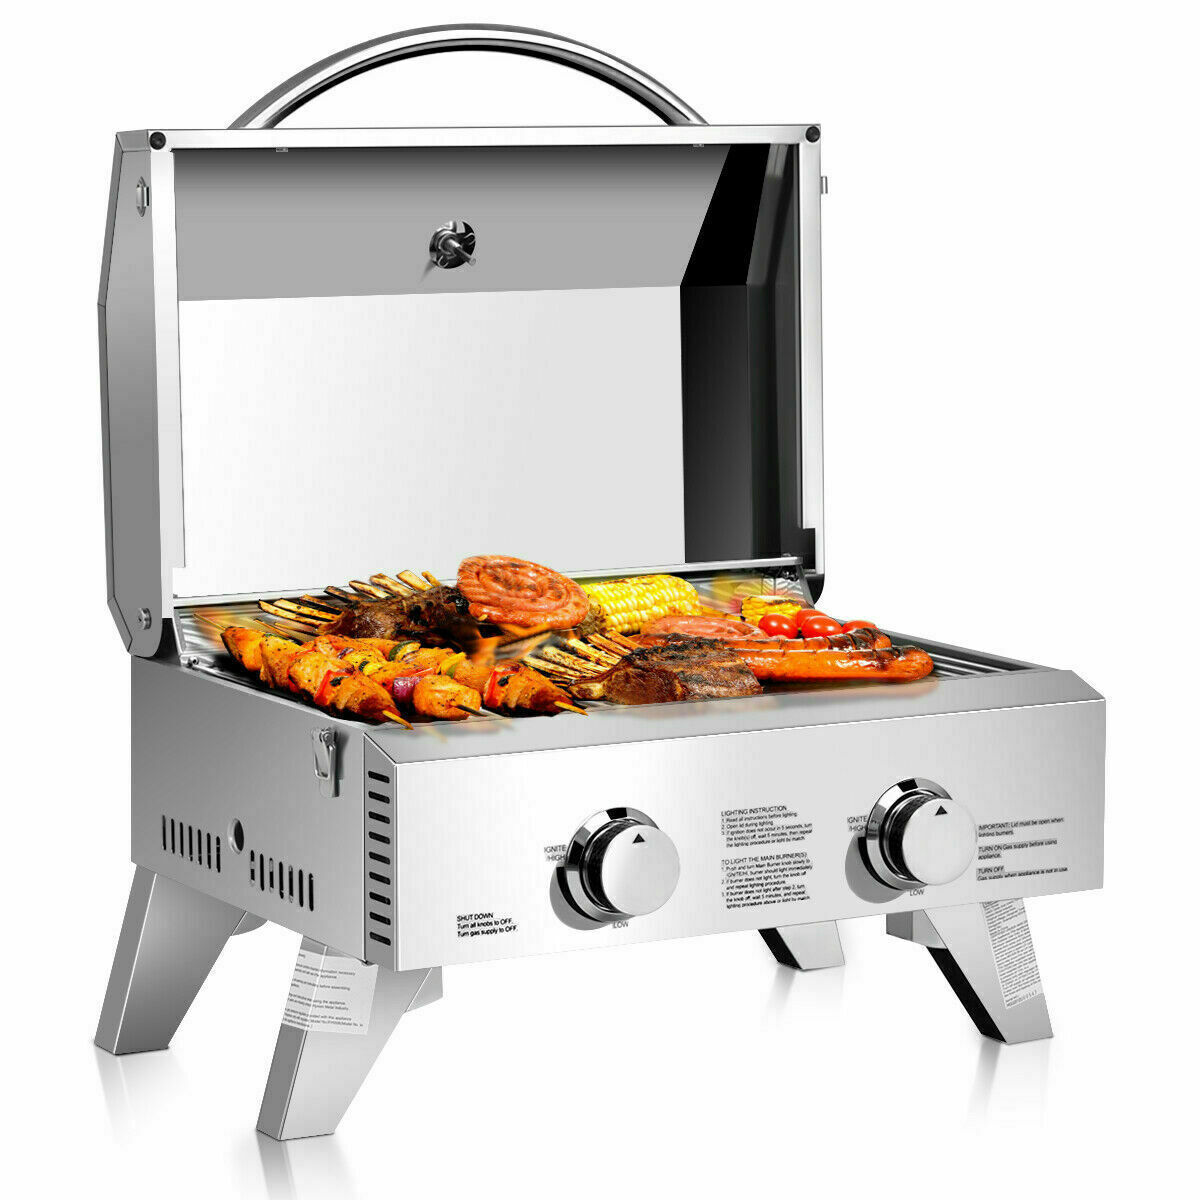 2 Burner Portable Stainless Steel Barbecue Table Top Propane